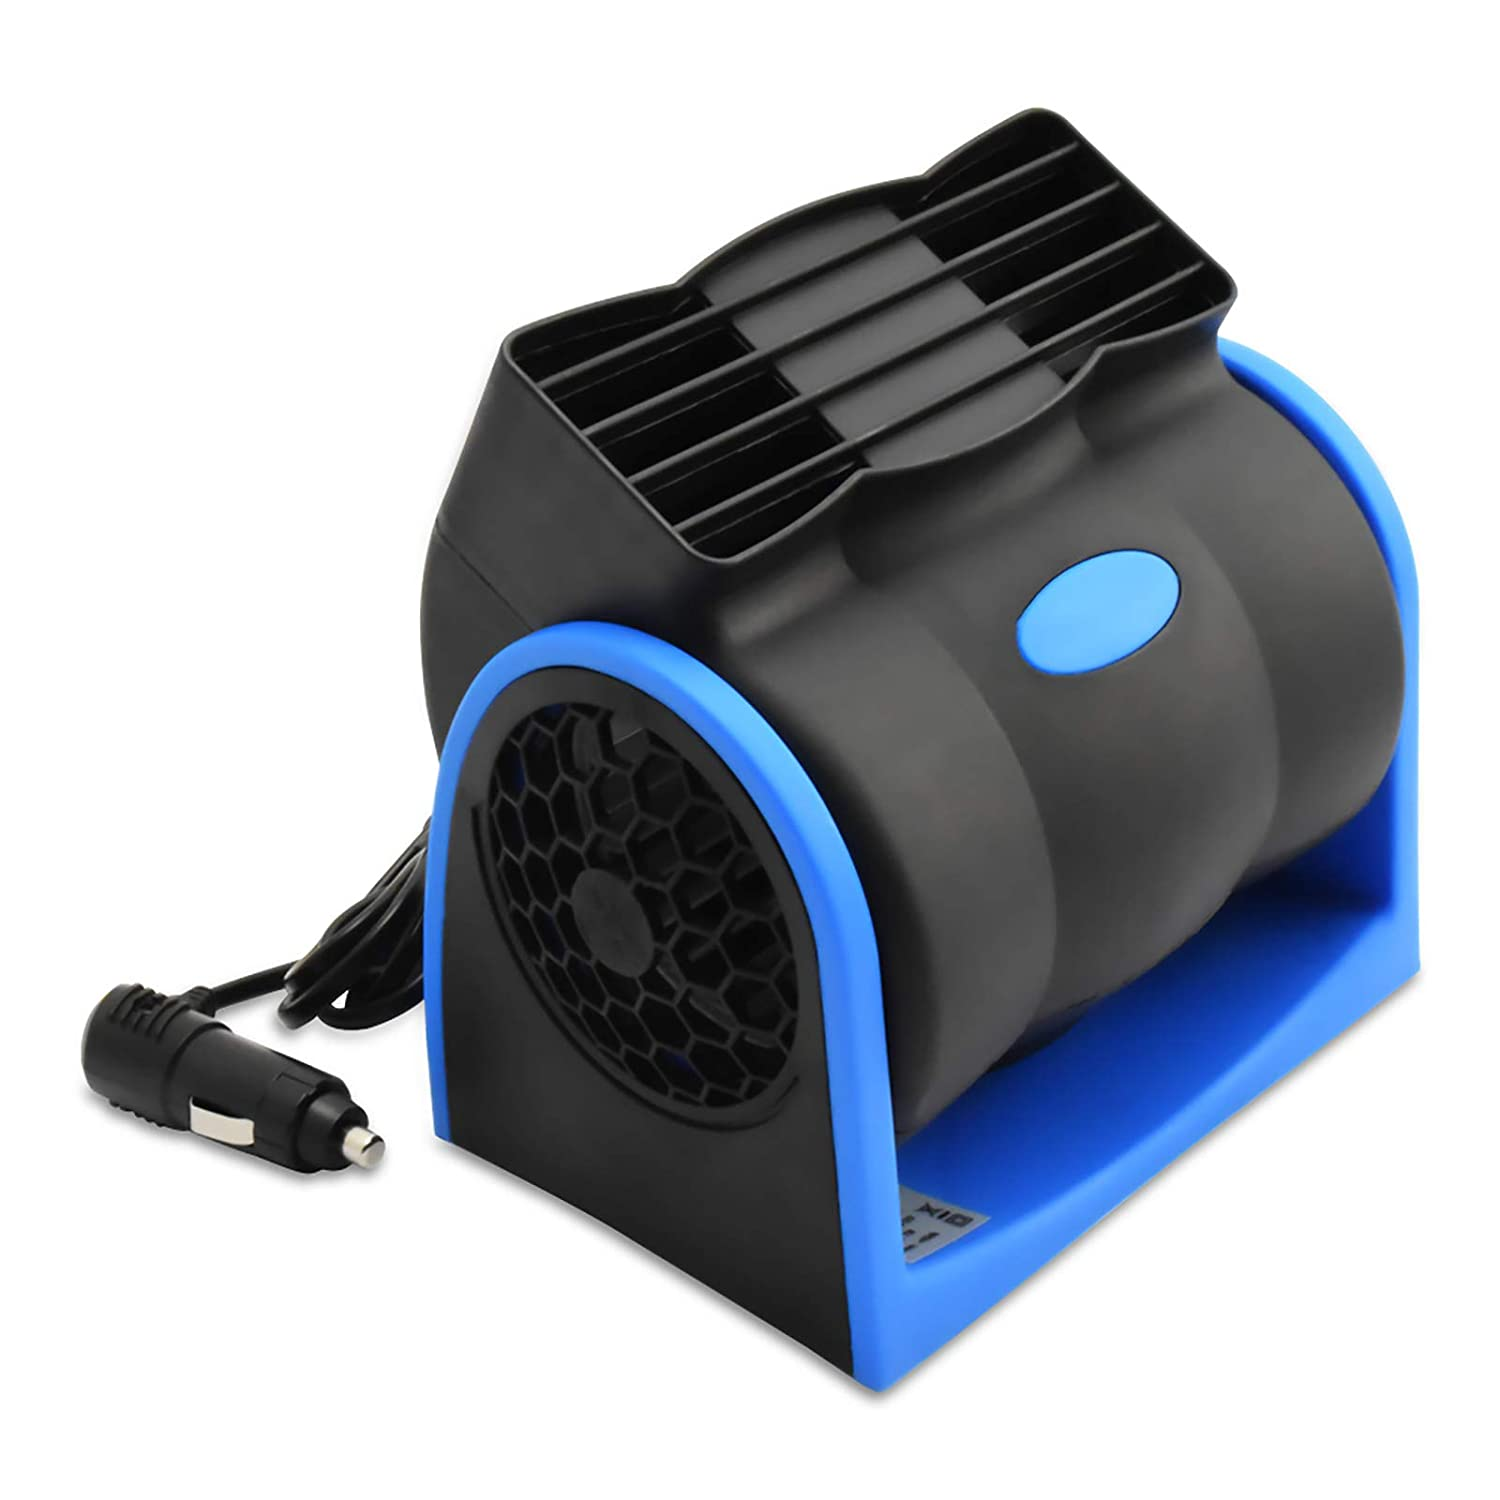 12V Car Challenge Popular the lowest price of Japan ☆ Fan YOUGUOM Auto RV Ventilation El Vehicle Powerful